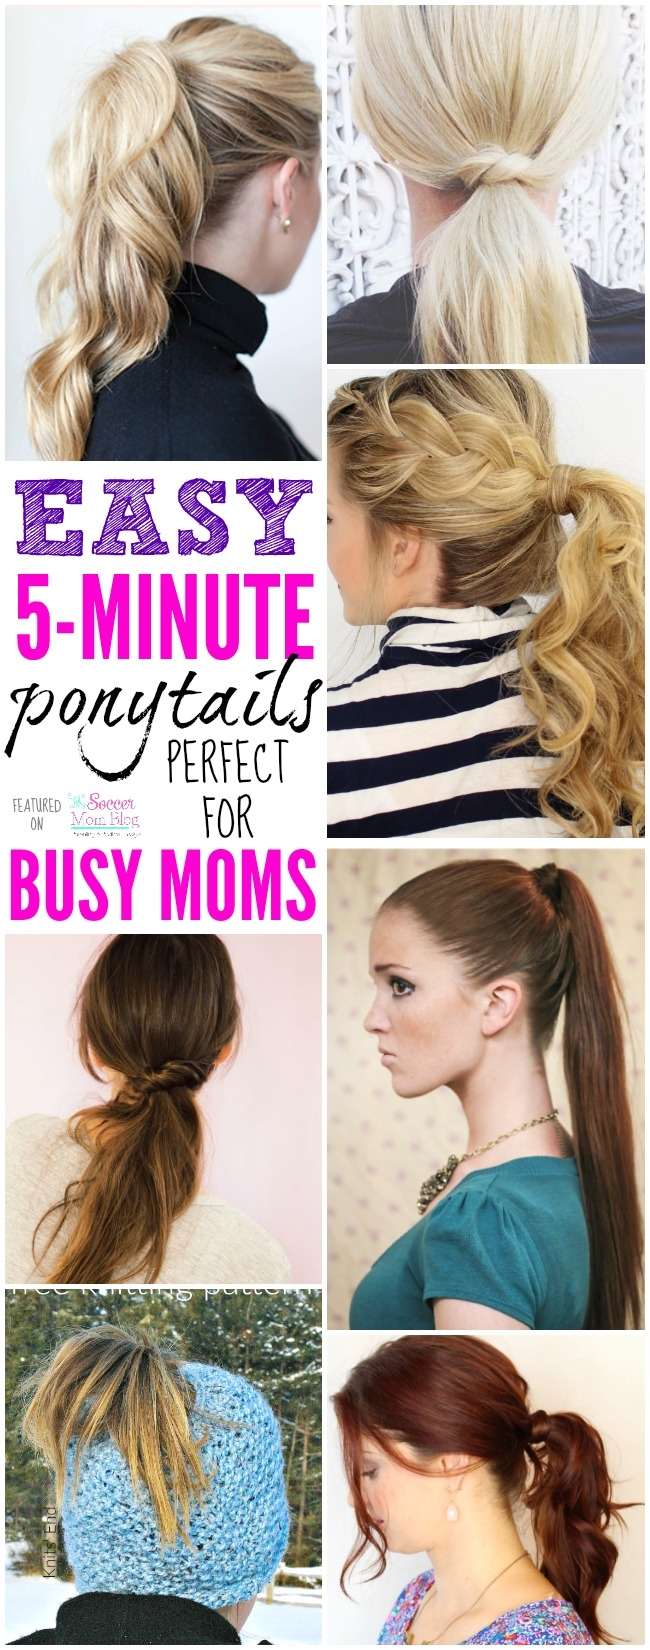 What mom has hours to spend fixing hair?! These 5 minute ponytail hairstyle ideas are perfect for busy moms and might just change your life!